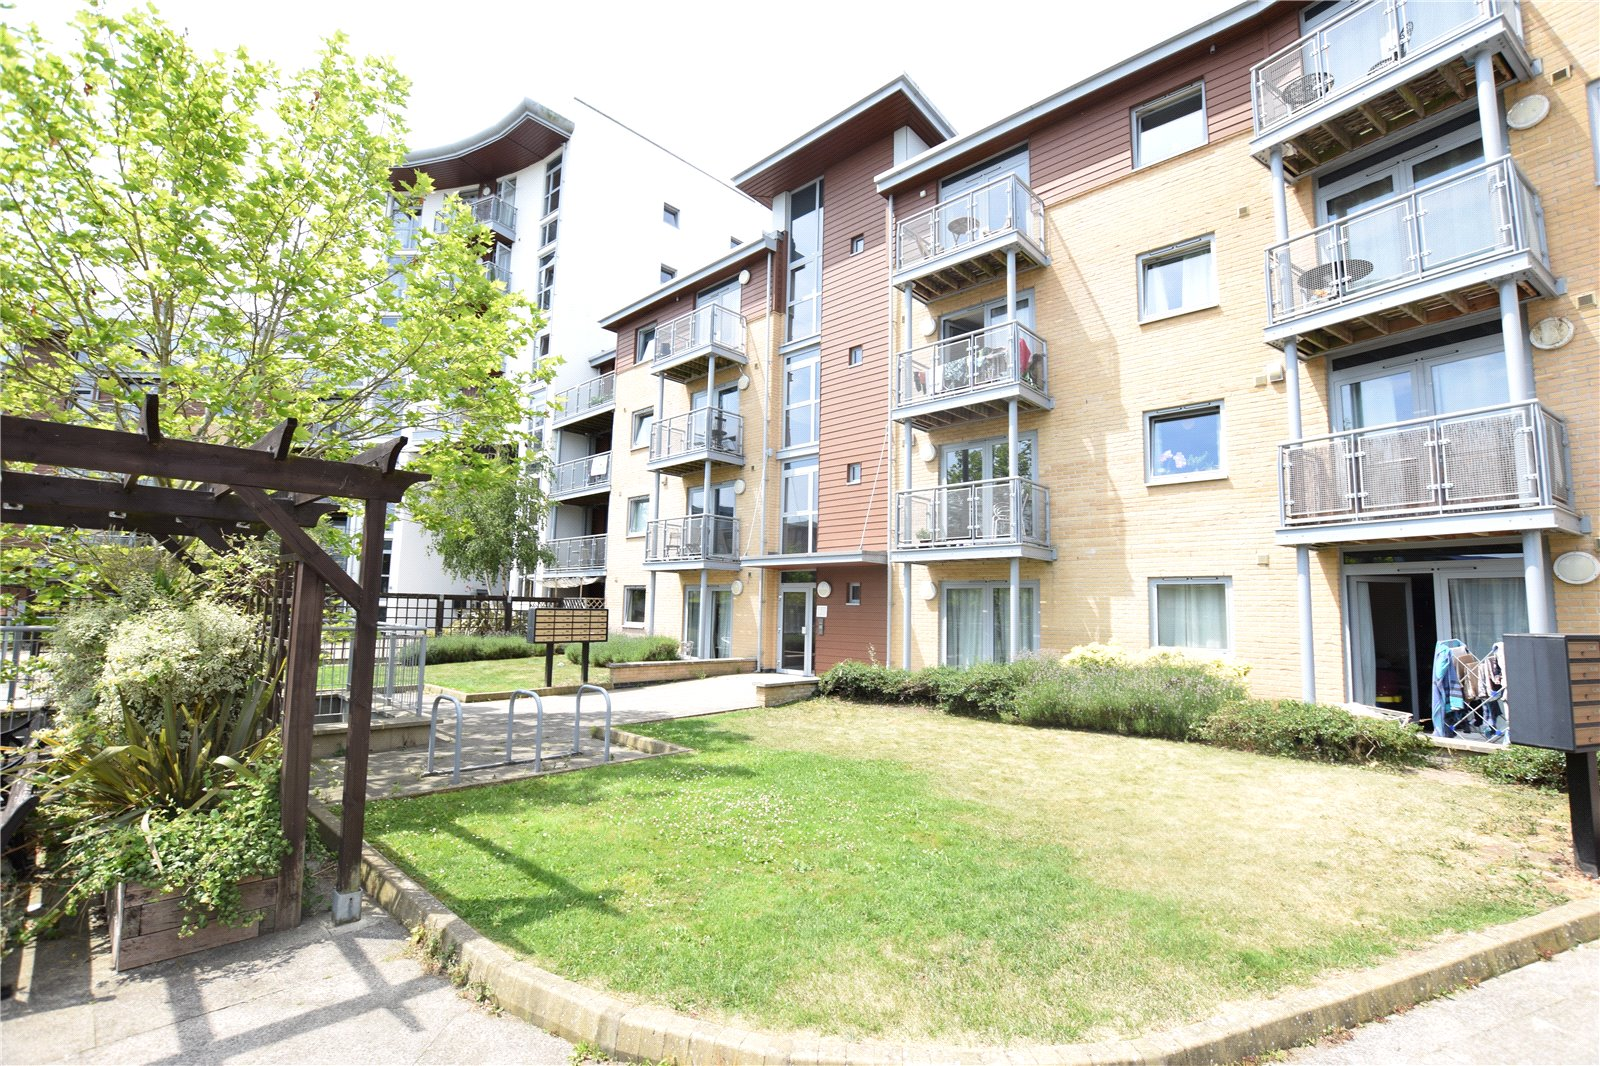 2 Bedrooms Apartment Flat for sale in Kelvin Gate, Bracknell, Berkshire, RG12